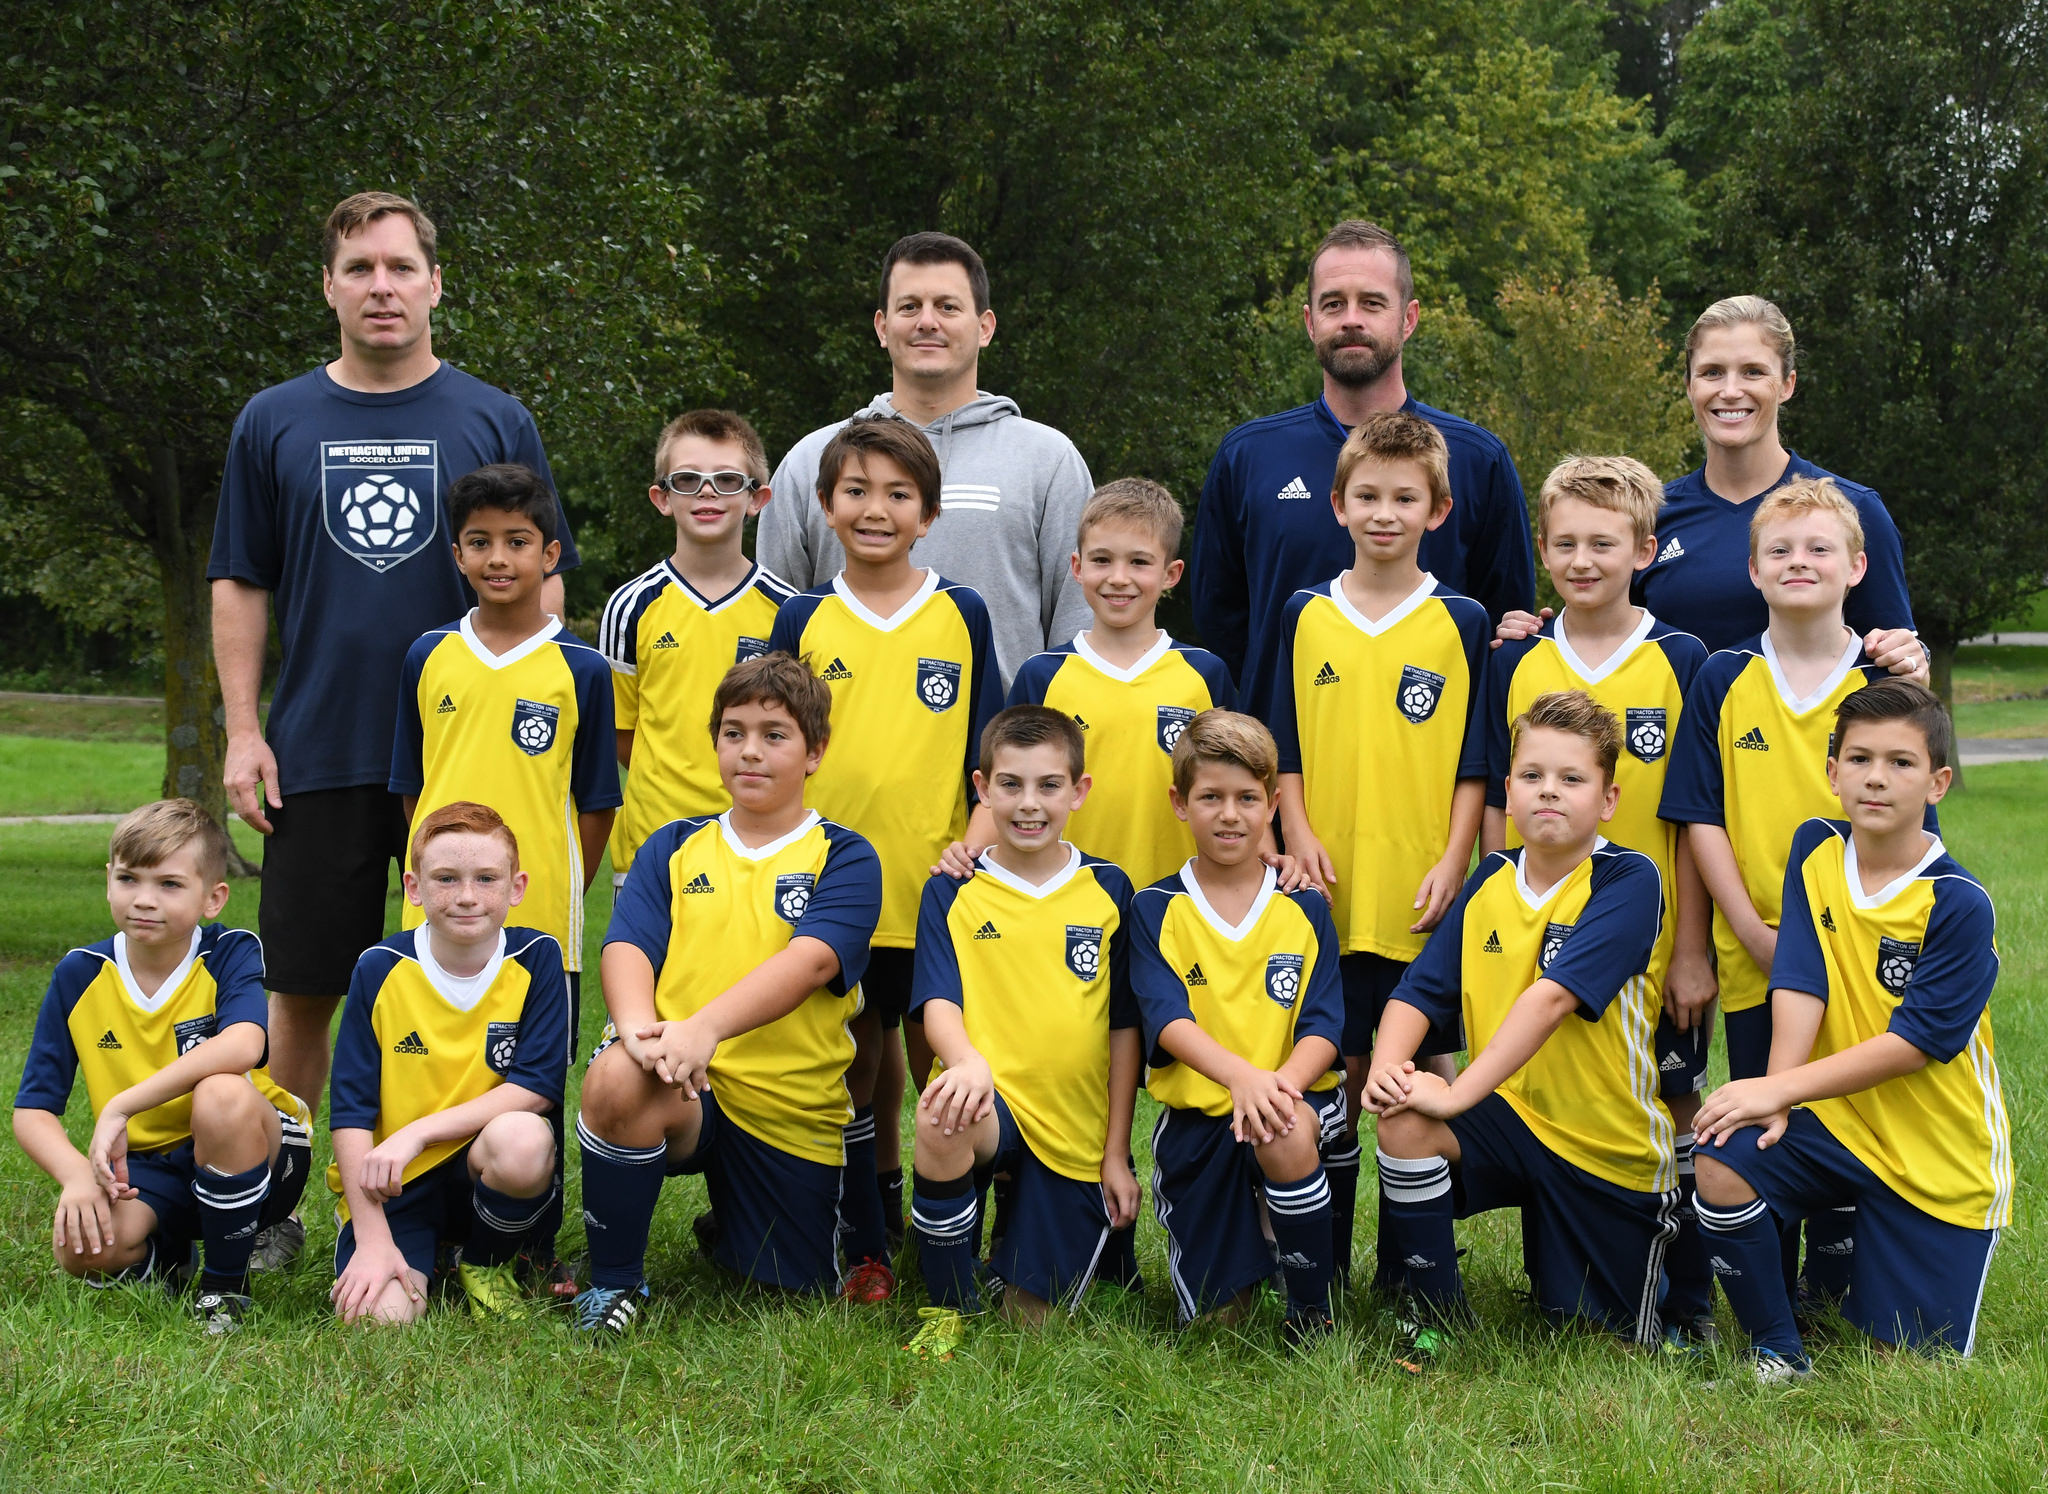 Methacton United Boys 2008 Flash